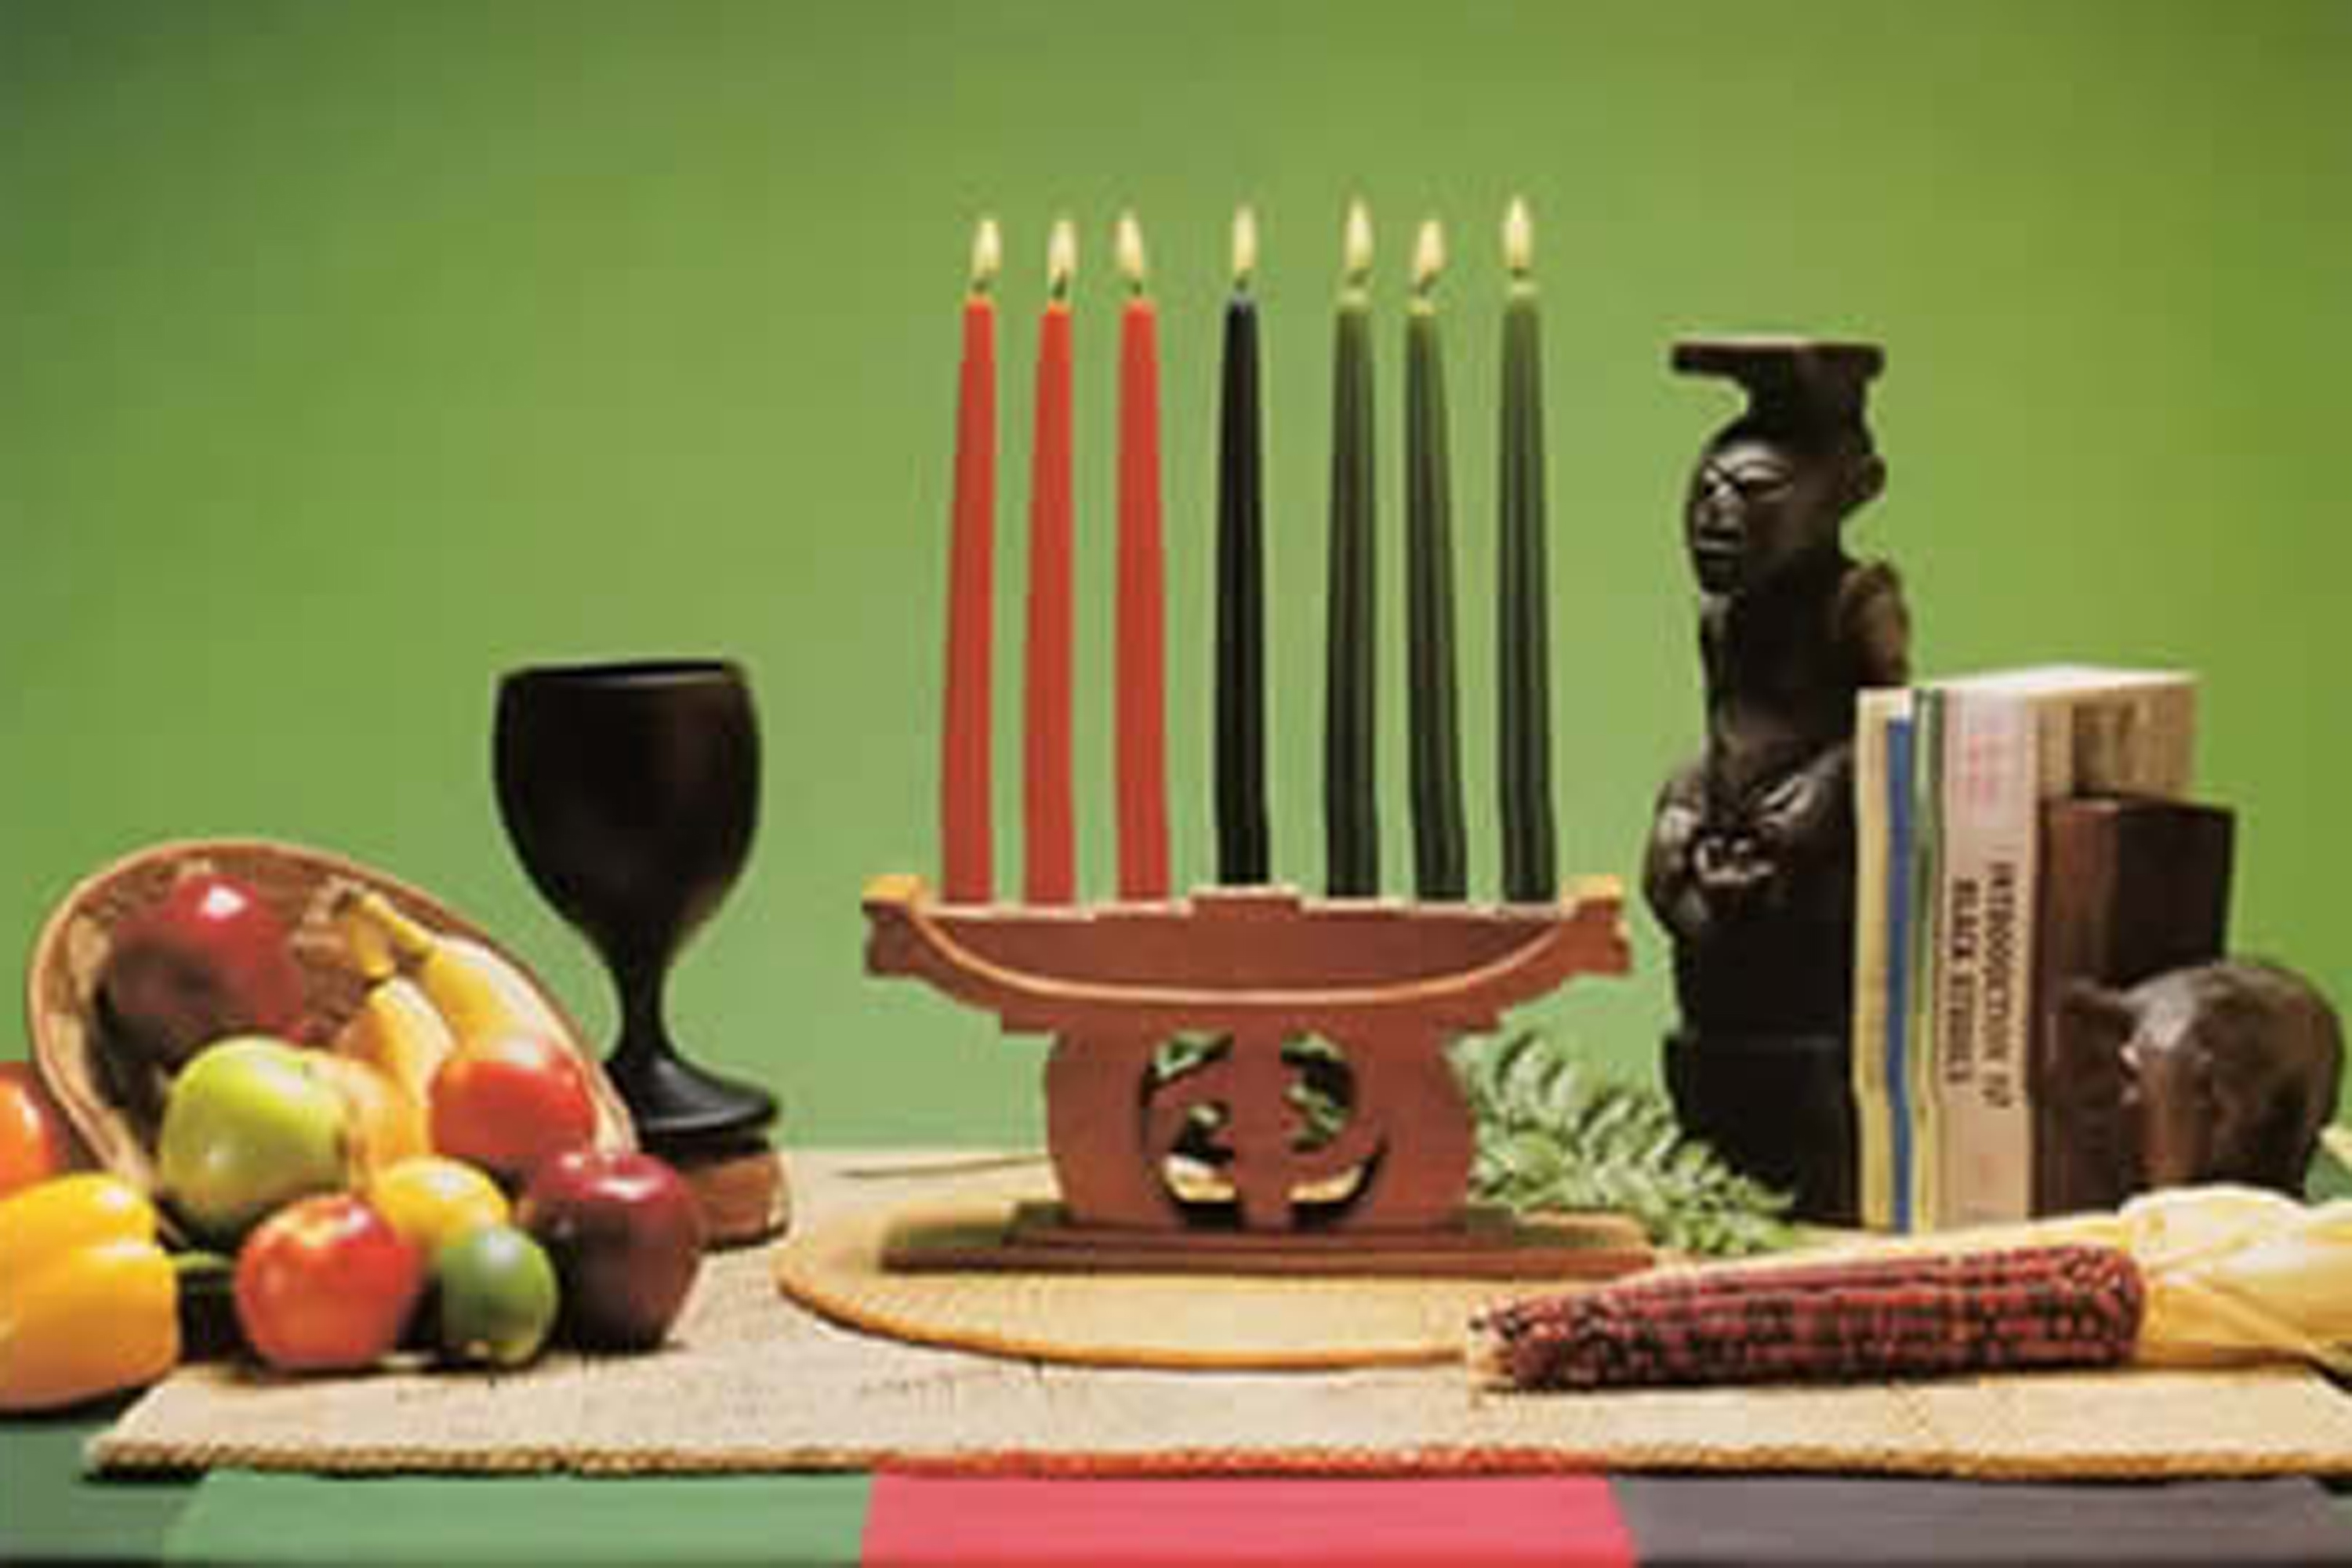 Kwanzaa An Intimate Family Holiday Celebrating African